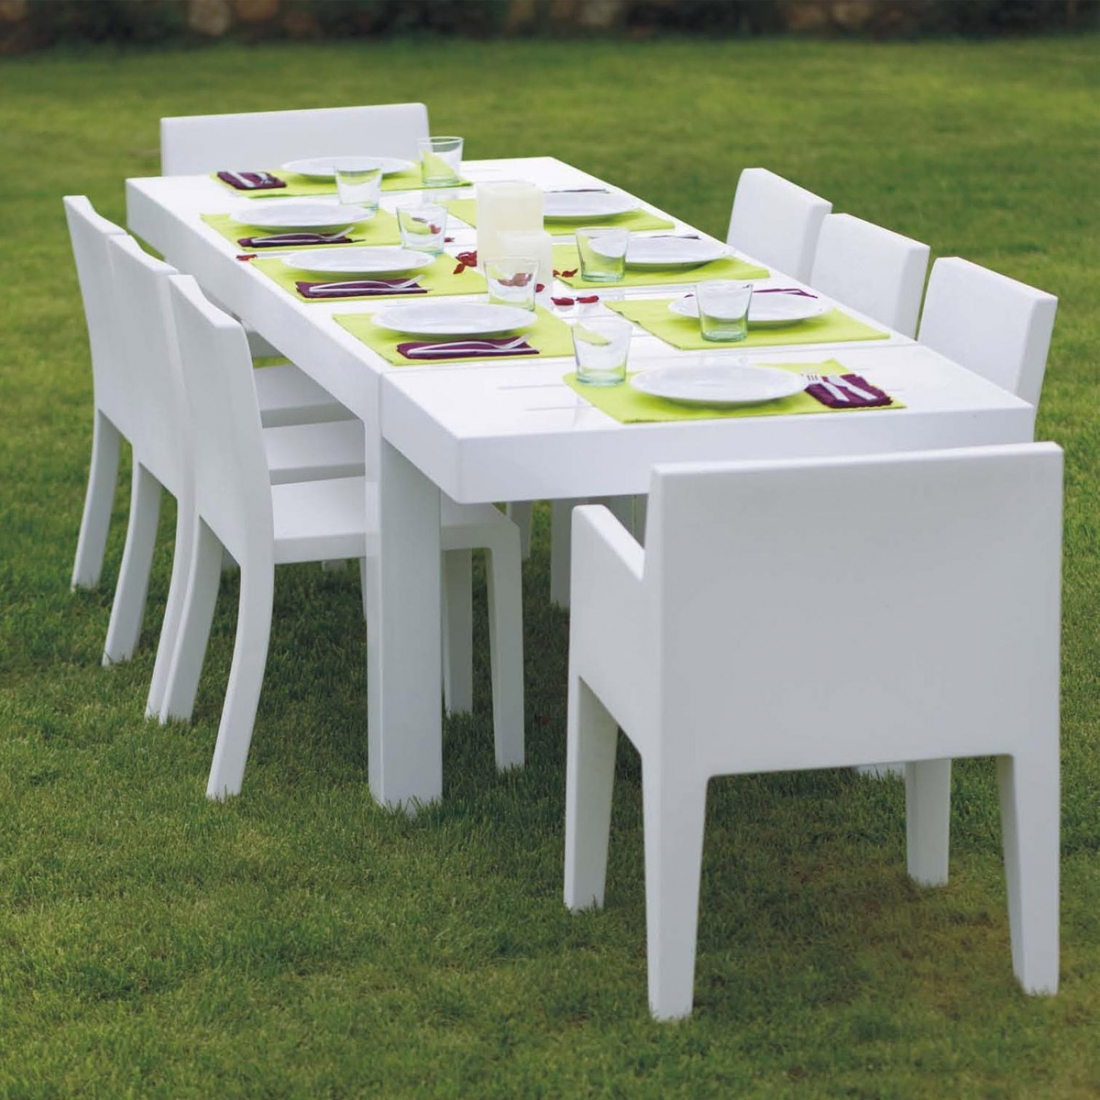 table de jardin design 12 personnes jut par vondom On table de jardin design